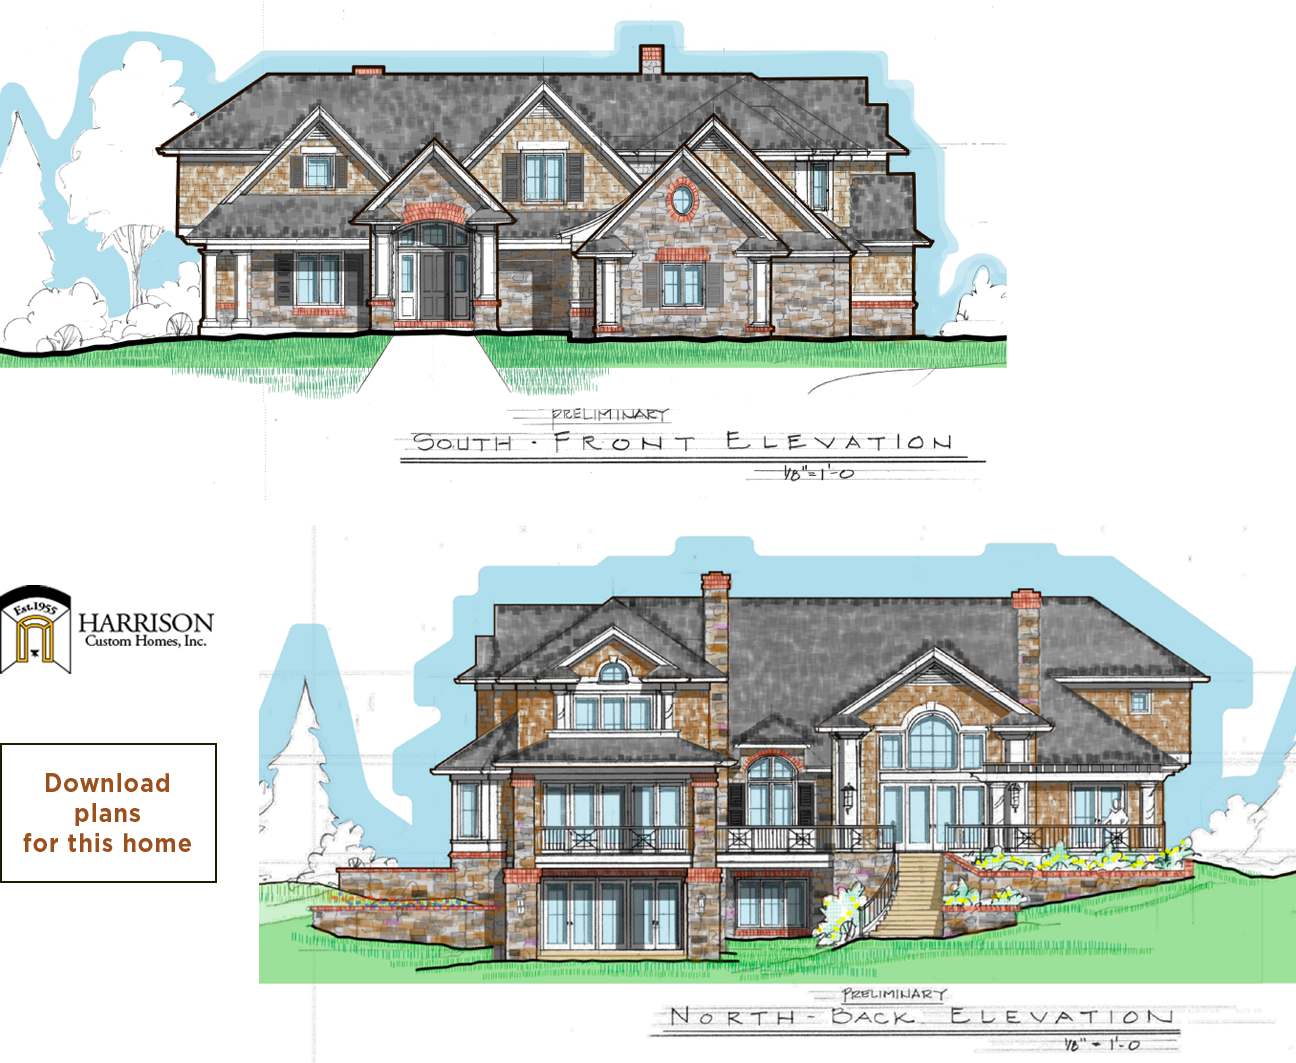 Harrison Custom Homes - Download Plans for this home